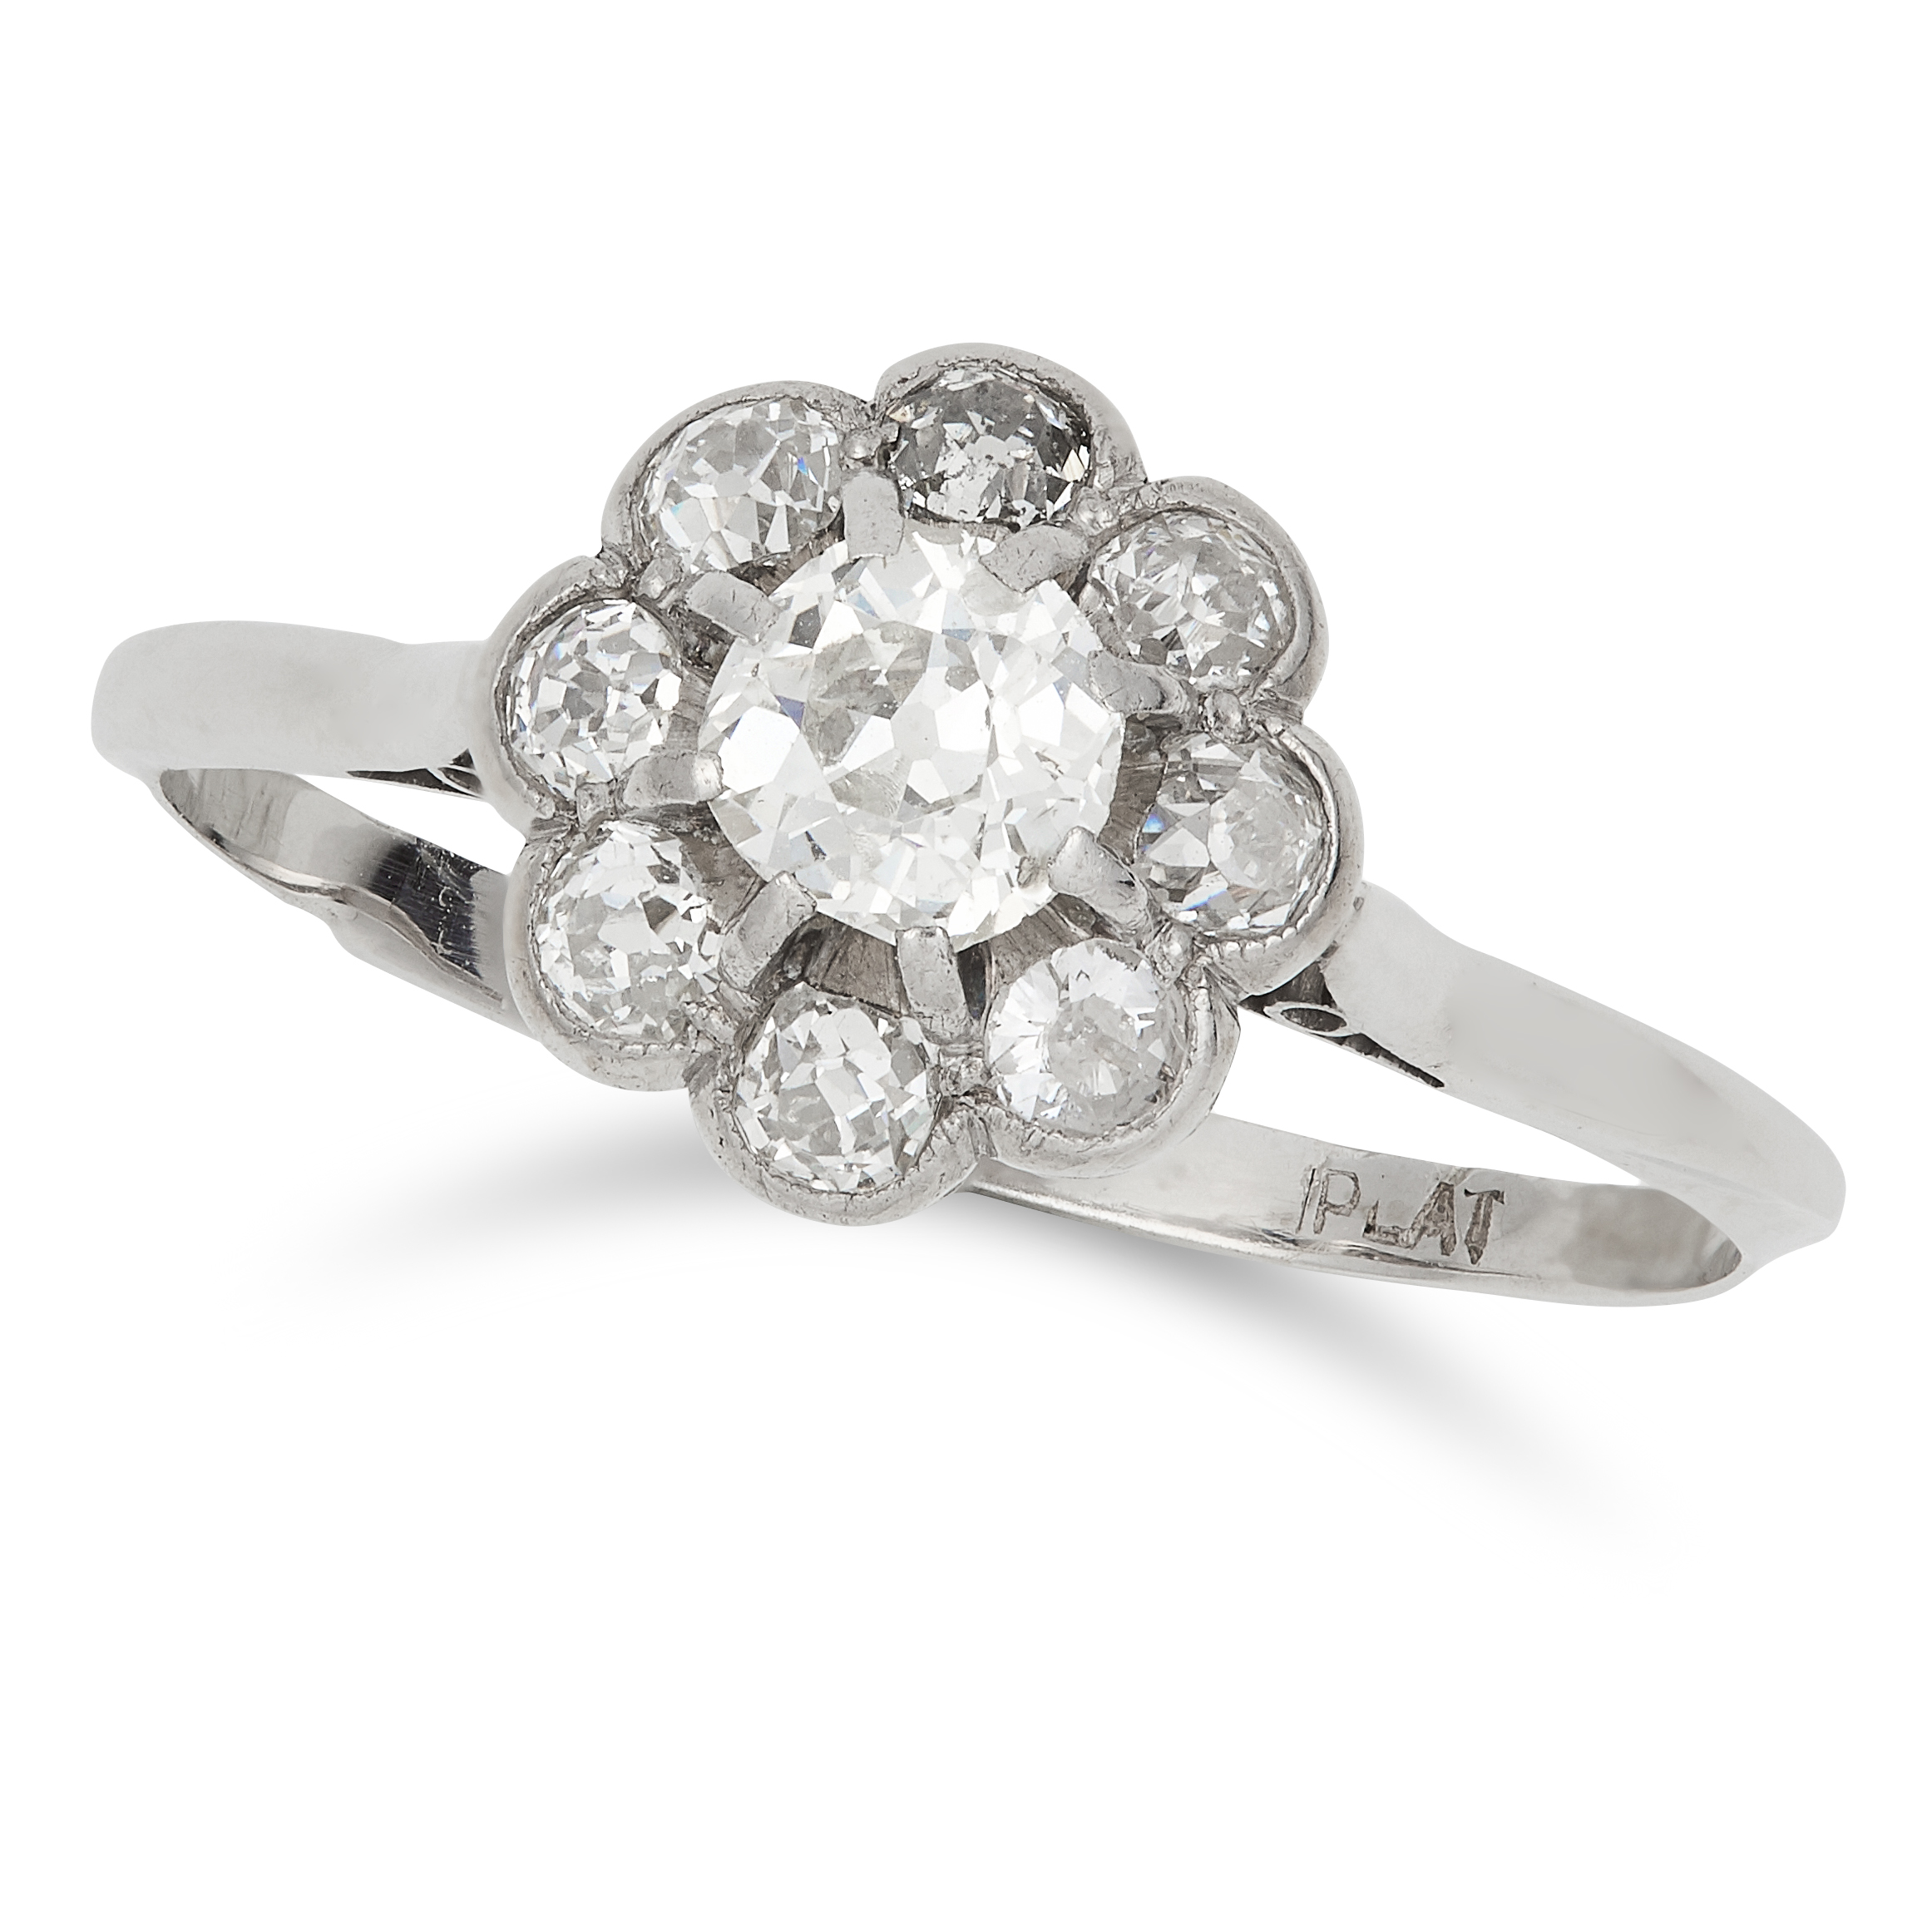 Los 36 - DIAMOND CLUSTER RING set with round and old cut diamonds, size V / 10.5, 2.9g.